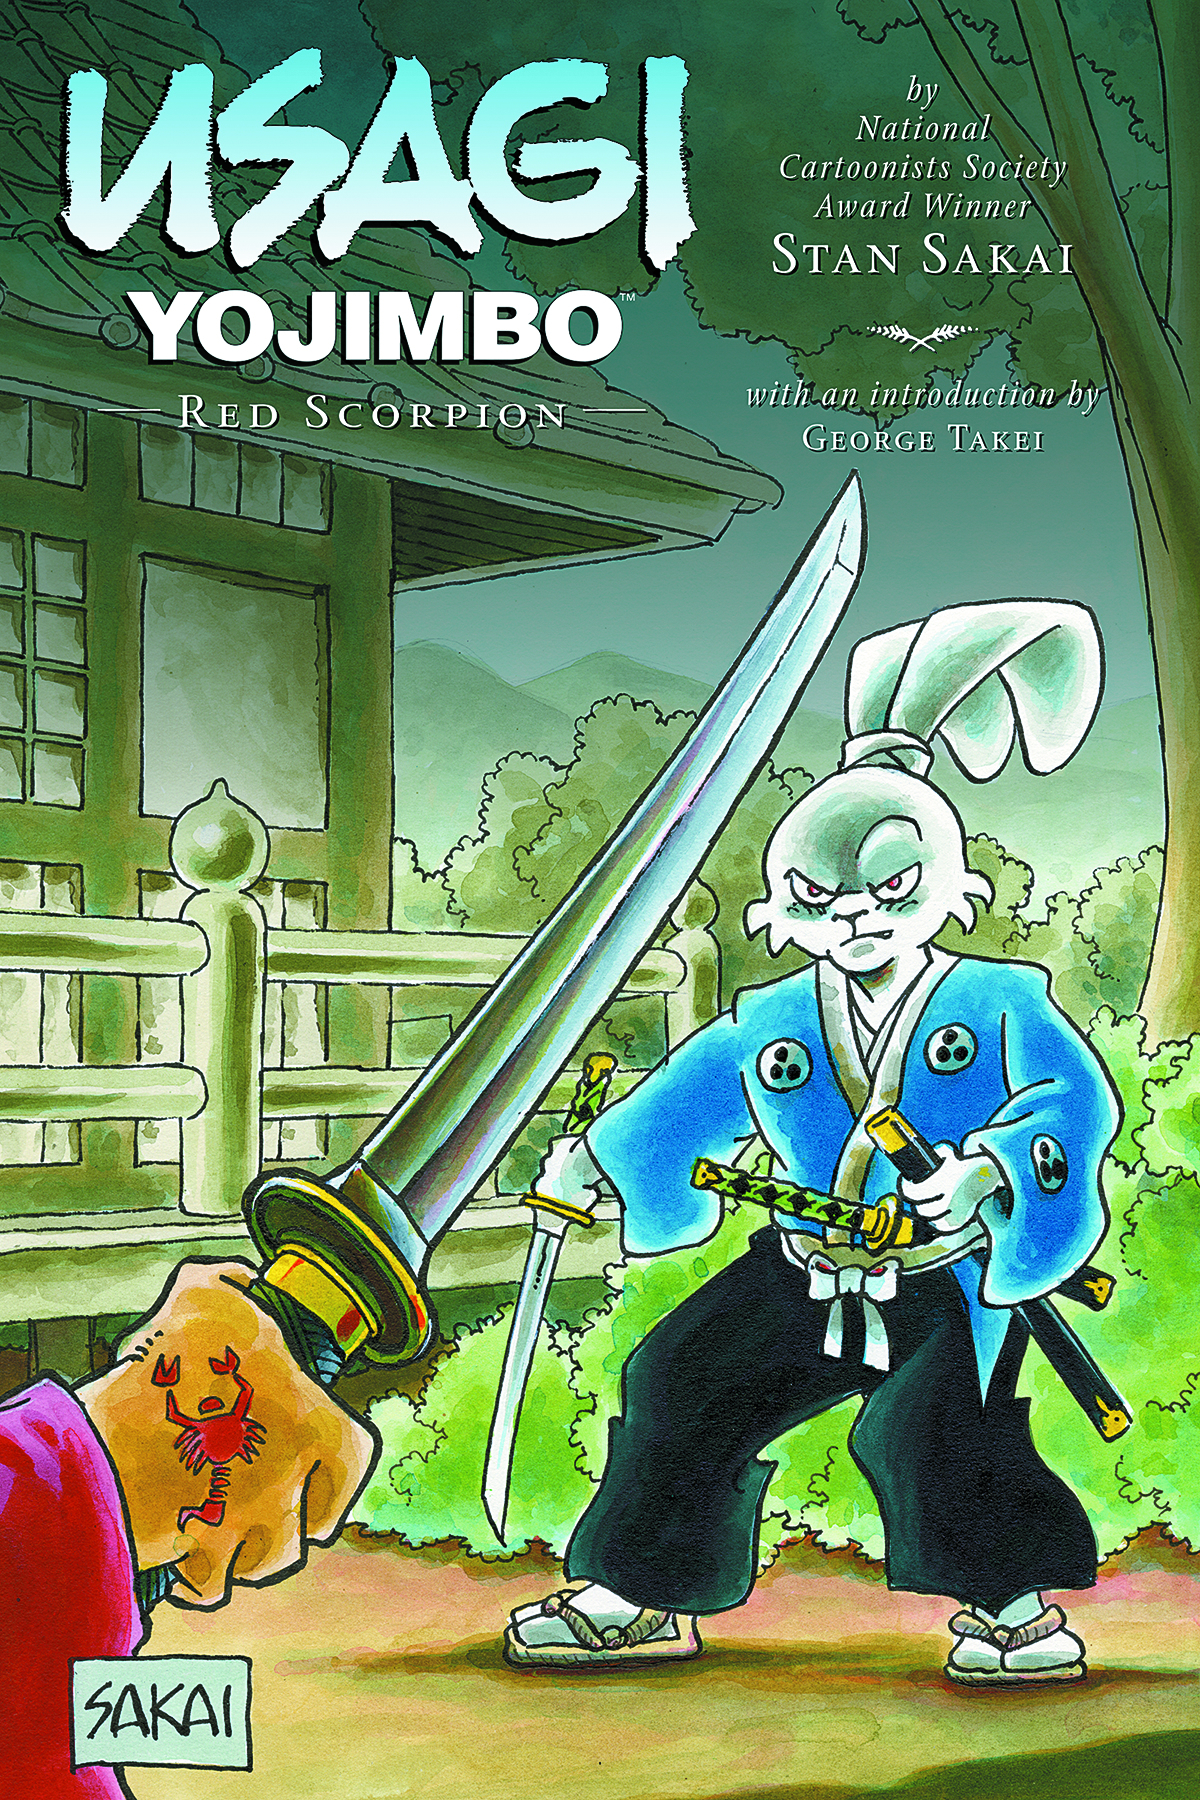 USAGI YOJIMBO TP VOL 28 RED SCORPION